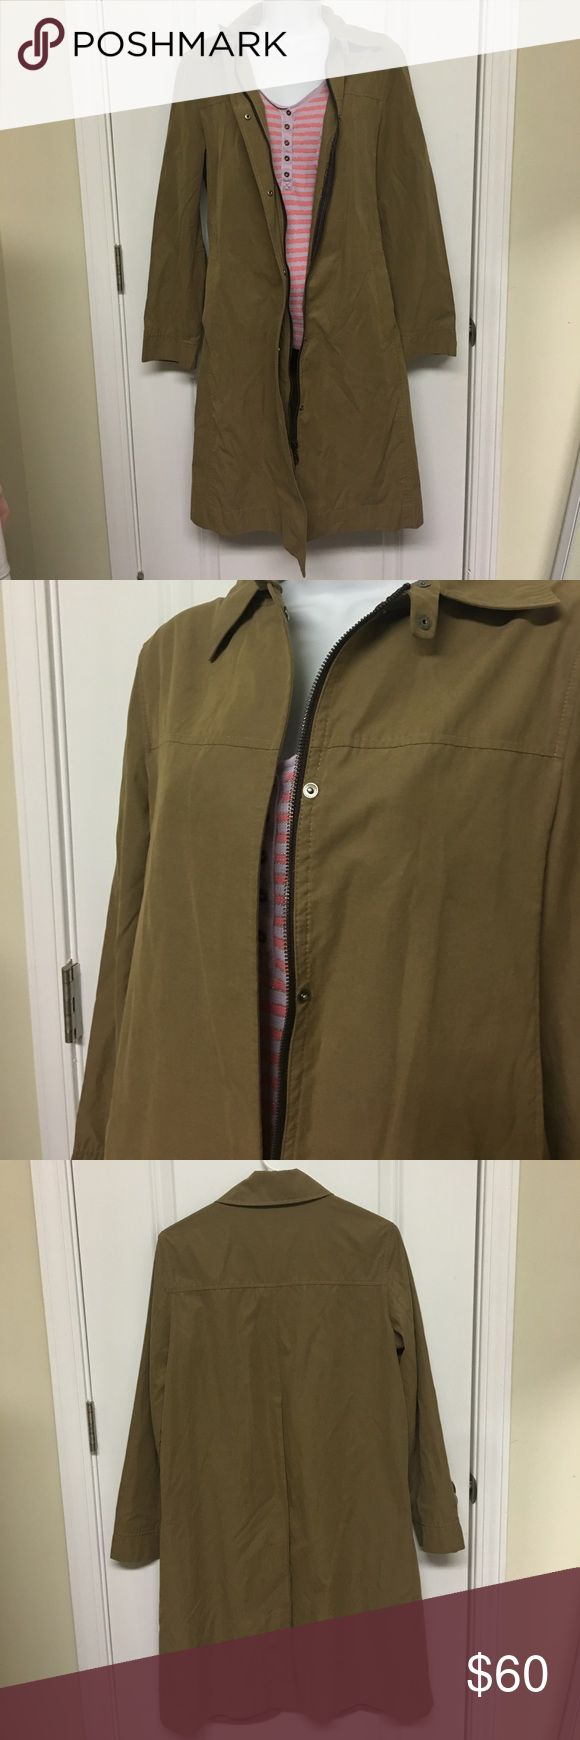 Jakes*s European olive green dress jacket Stunning dress jacket! Can be worn all year long. Says size 34. I recommend this for a size small-medium. Comes with replacements snaps. jakes Jackets & Coats